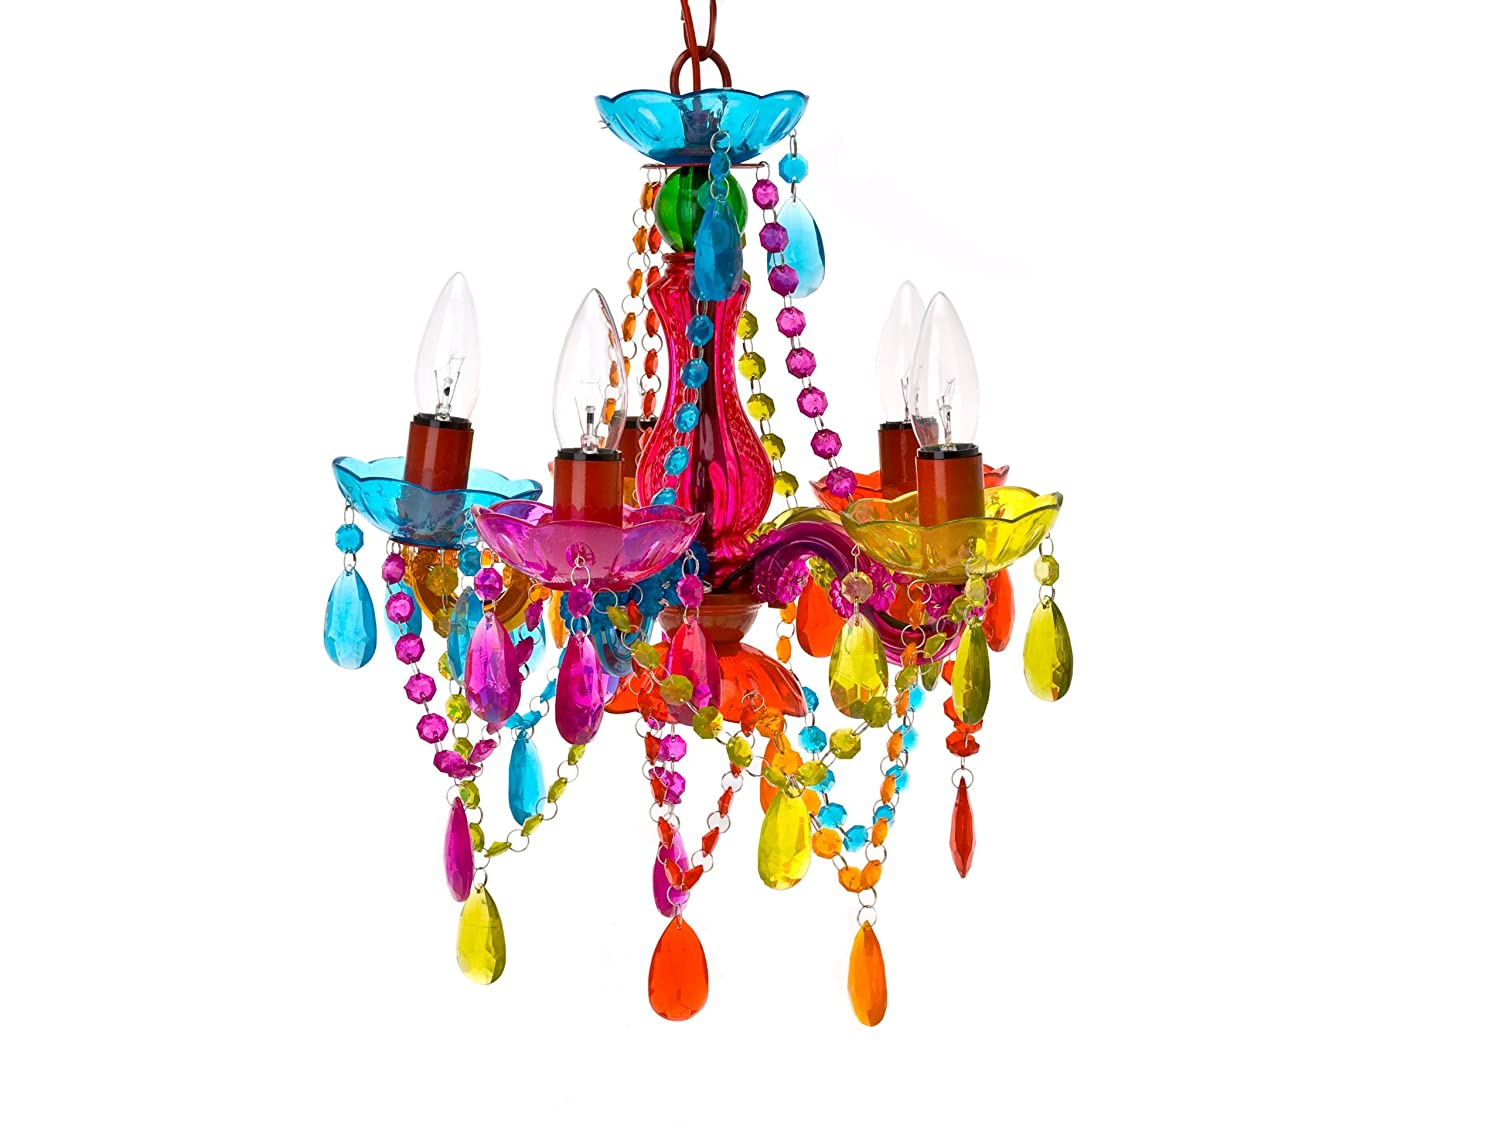 Silly lamp 5 arms chandelier gypsy small multi colour amazon silly lamp 5 arms chandelier gypsy small multi colour amazon kitchen home arubaitofo Image collections